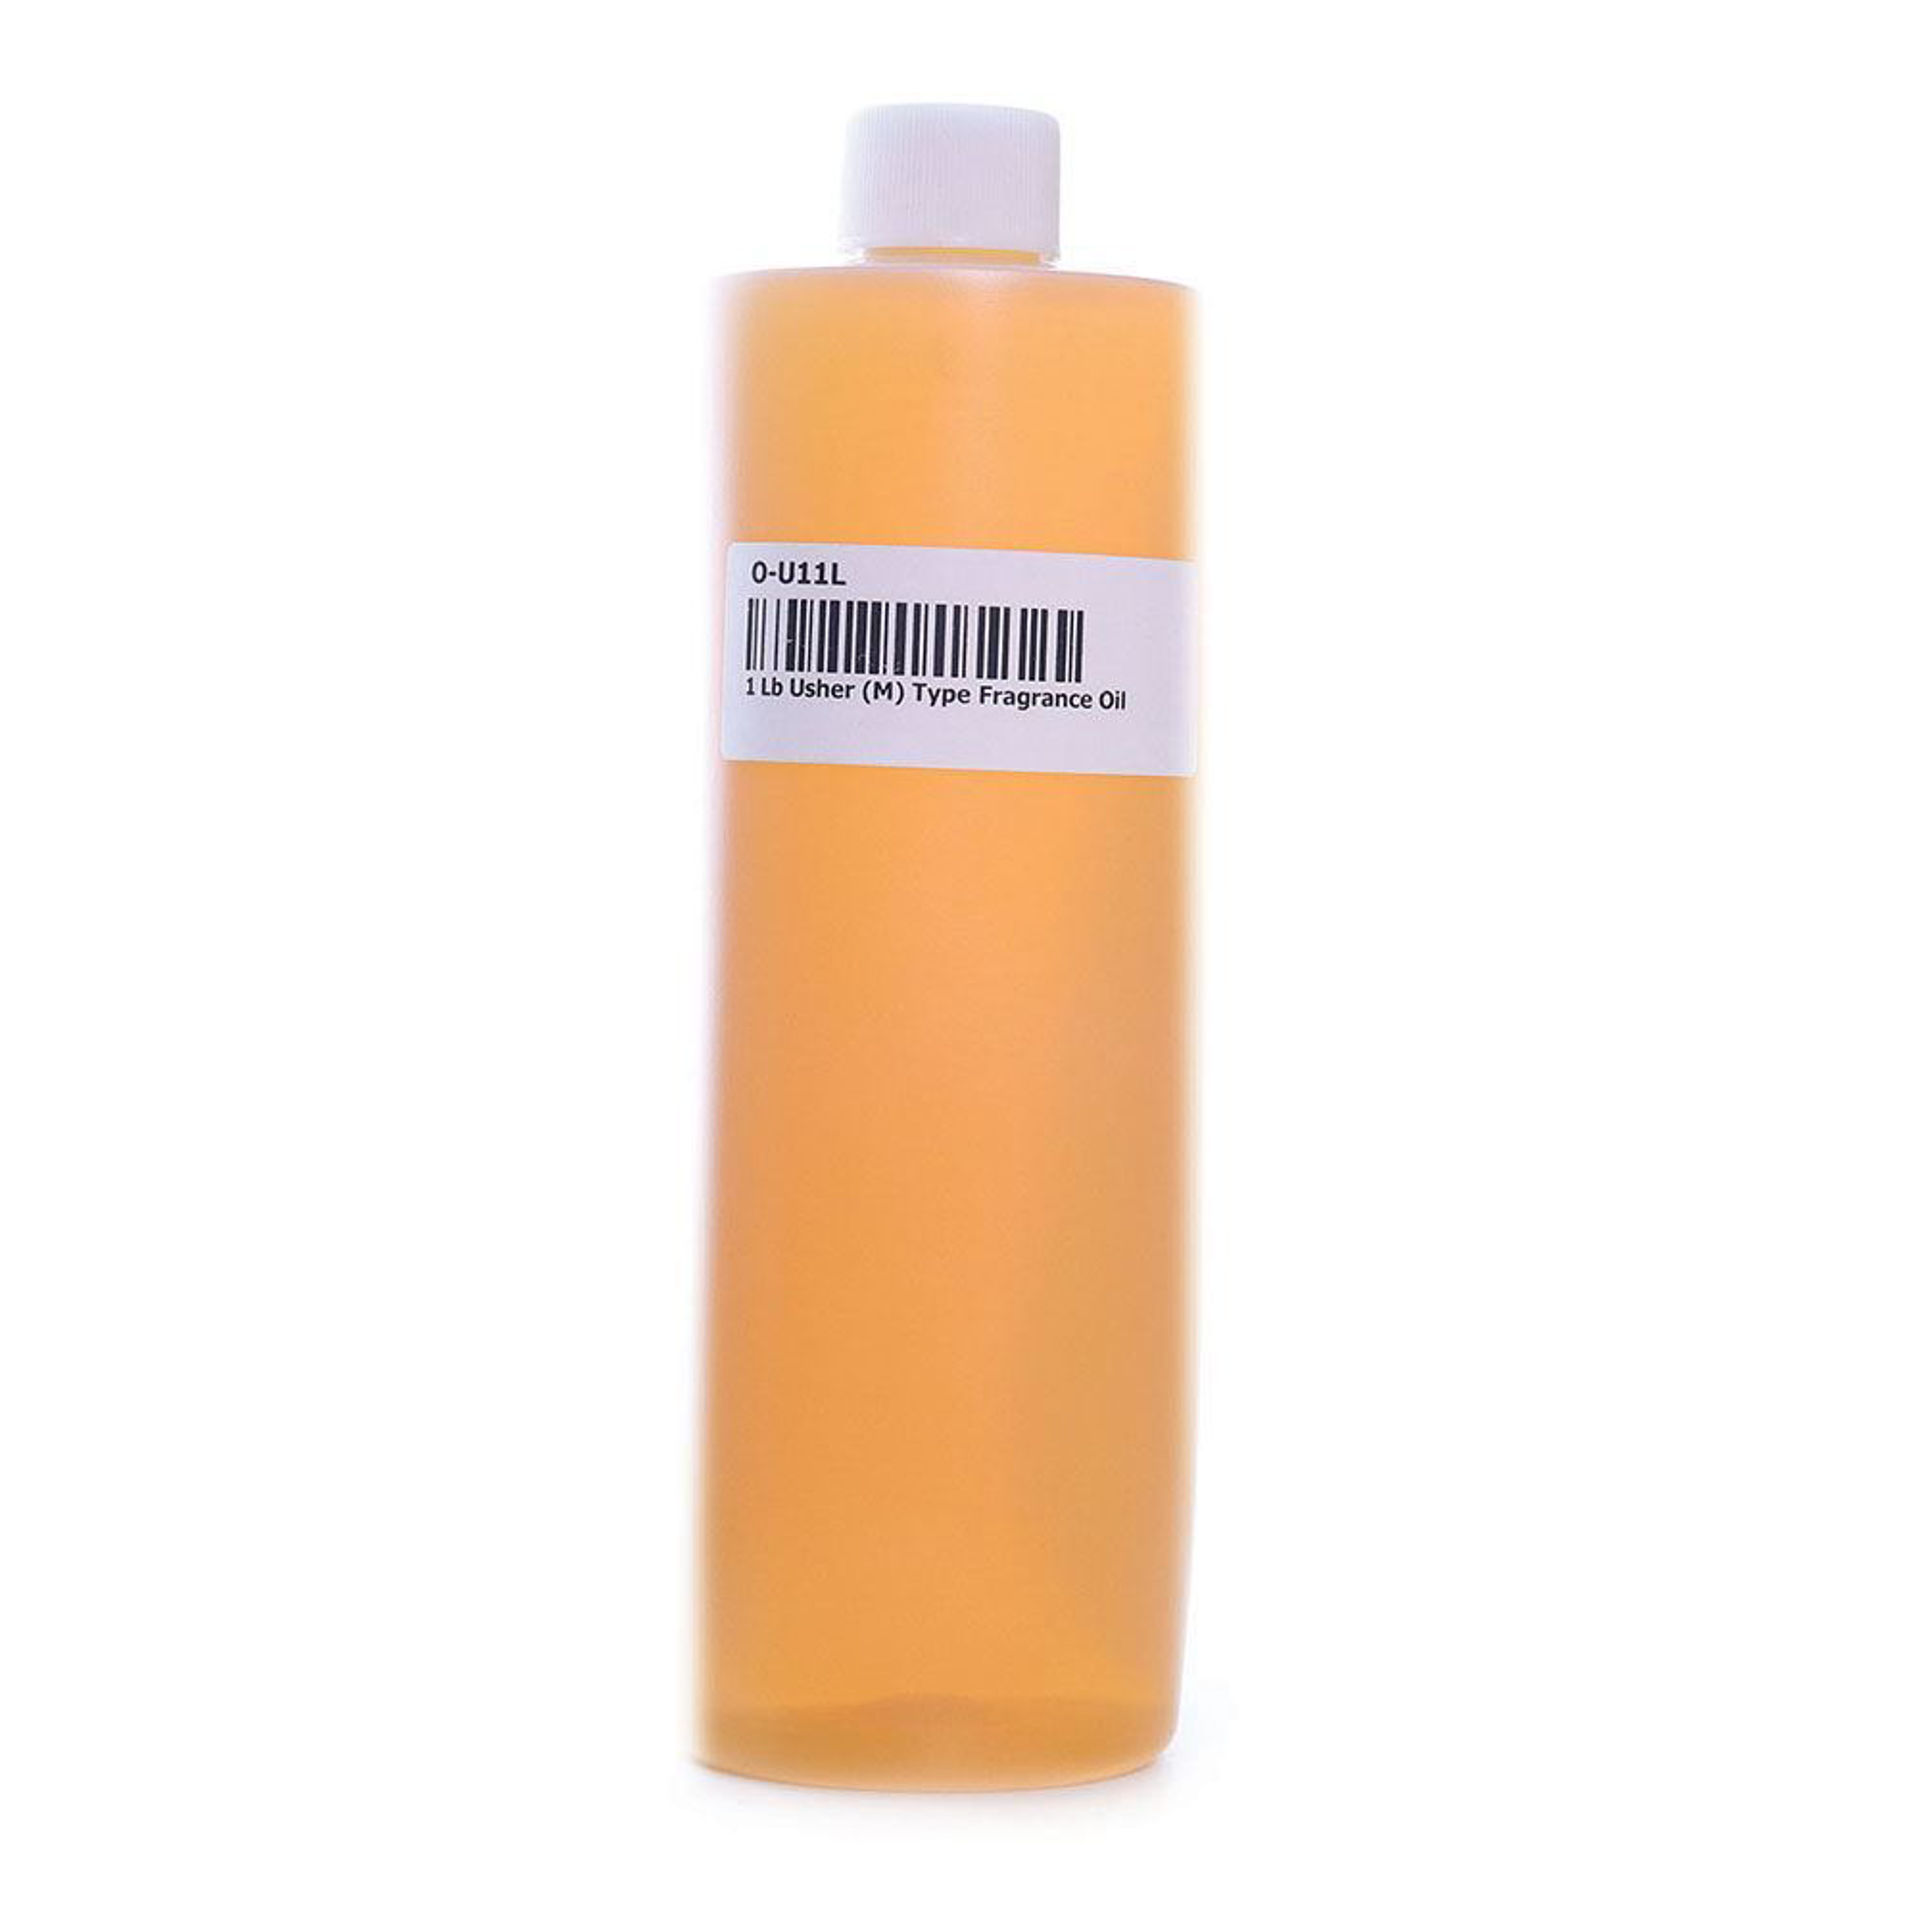 Picture of 1 Lb Usher (M) Type Fragrance Oil